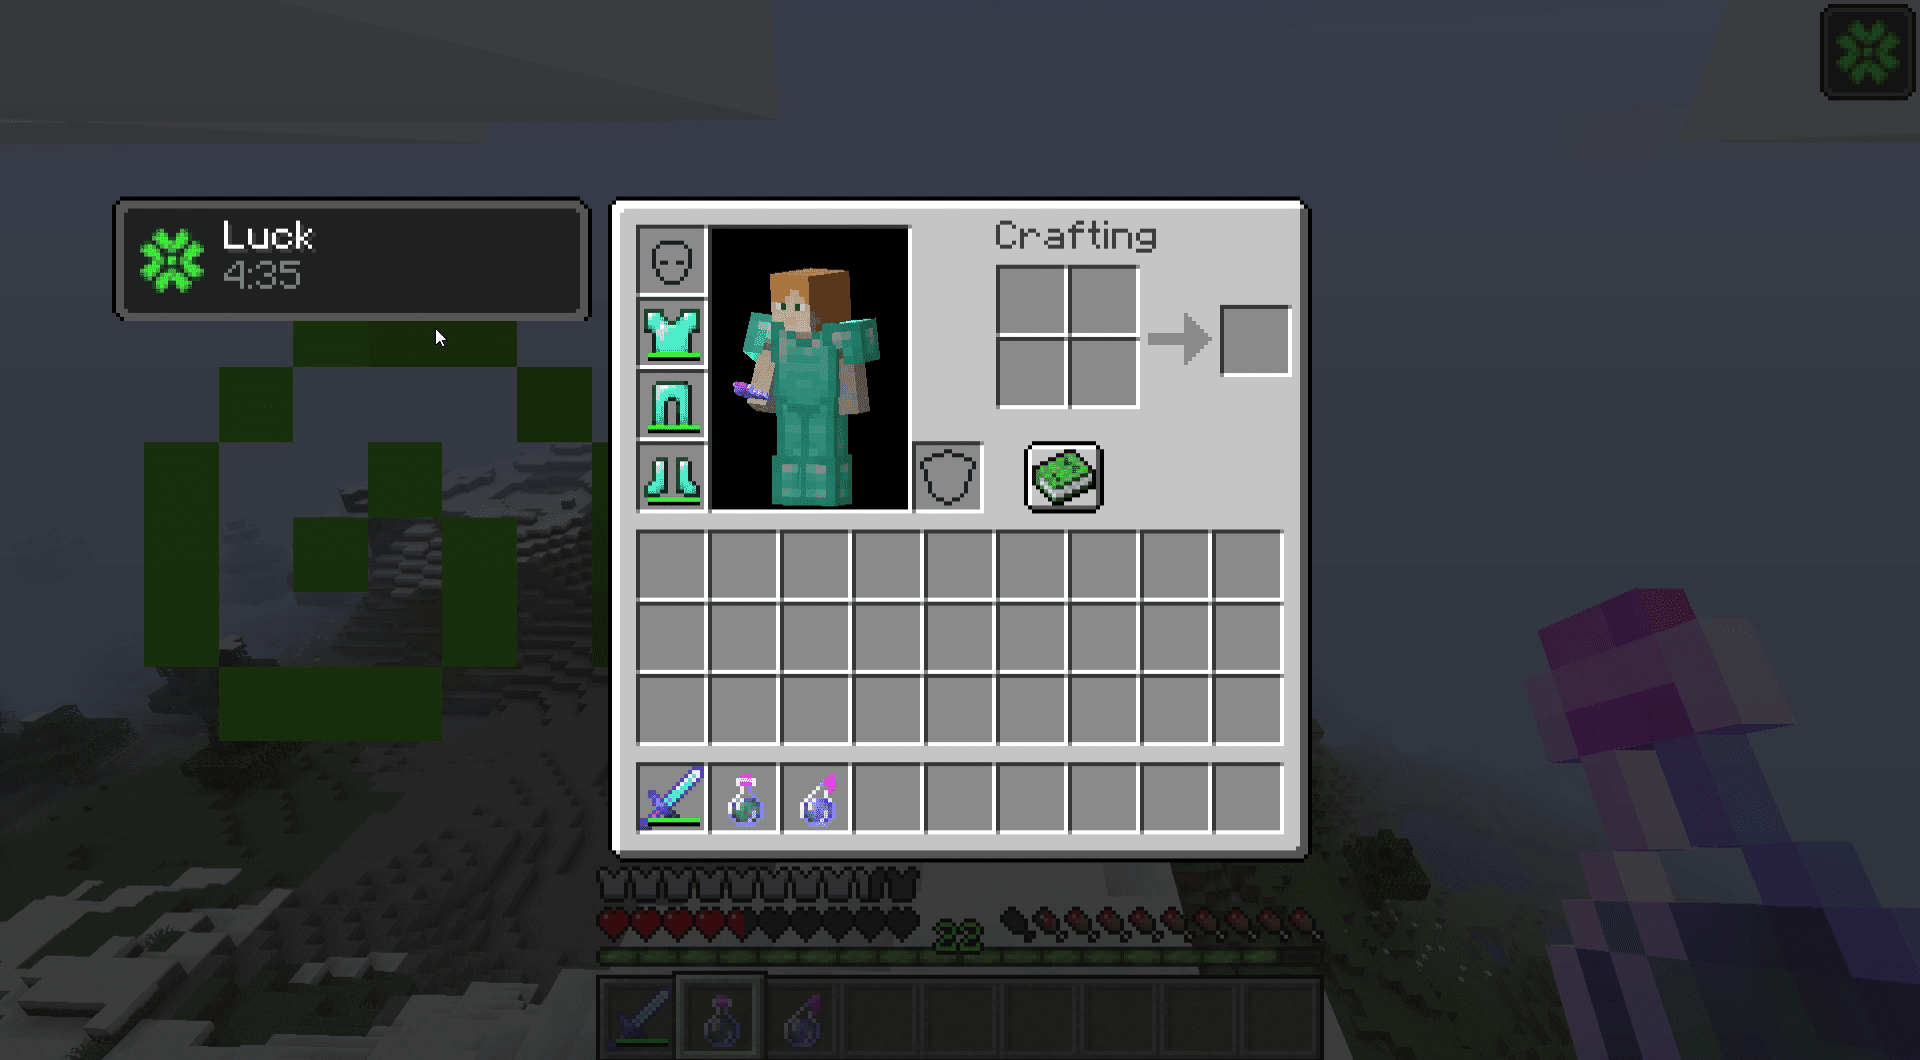 A screenshot of the Minecraft equipment menu with luck active.